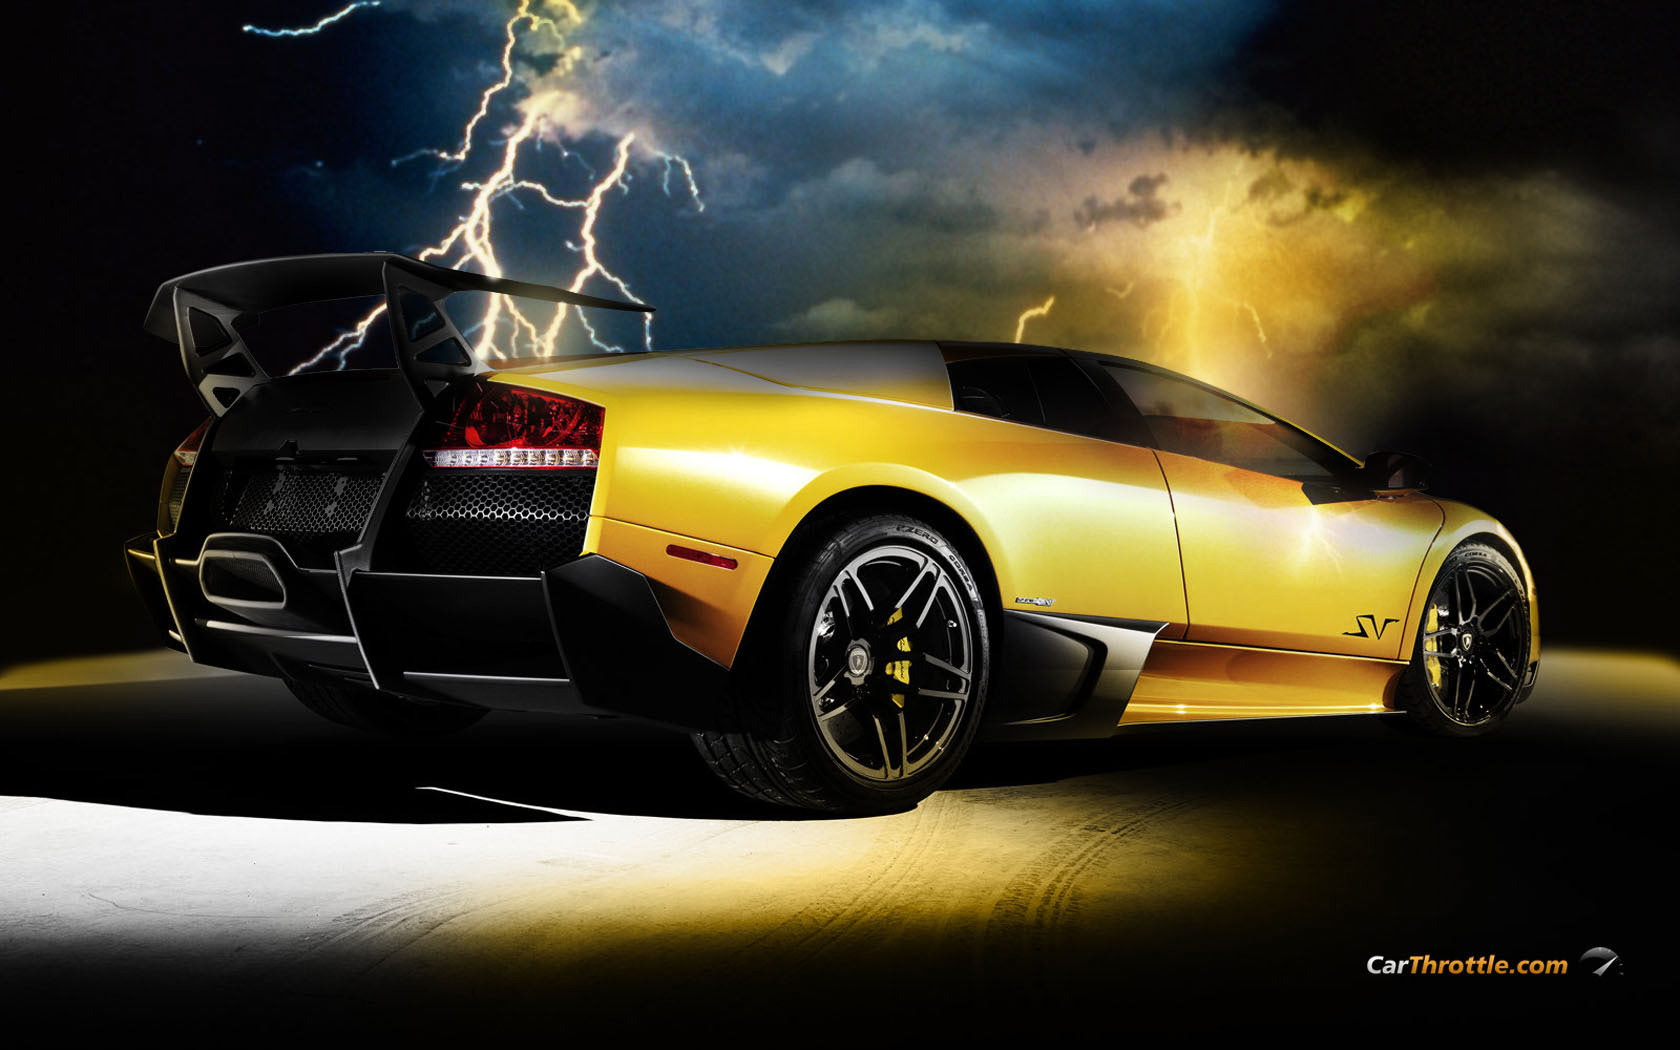 Lamborghini Van Wallpaper Wallpapers Lamborghini Wallpapers 1680x1050